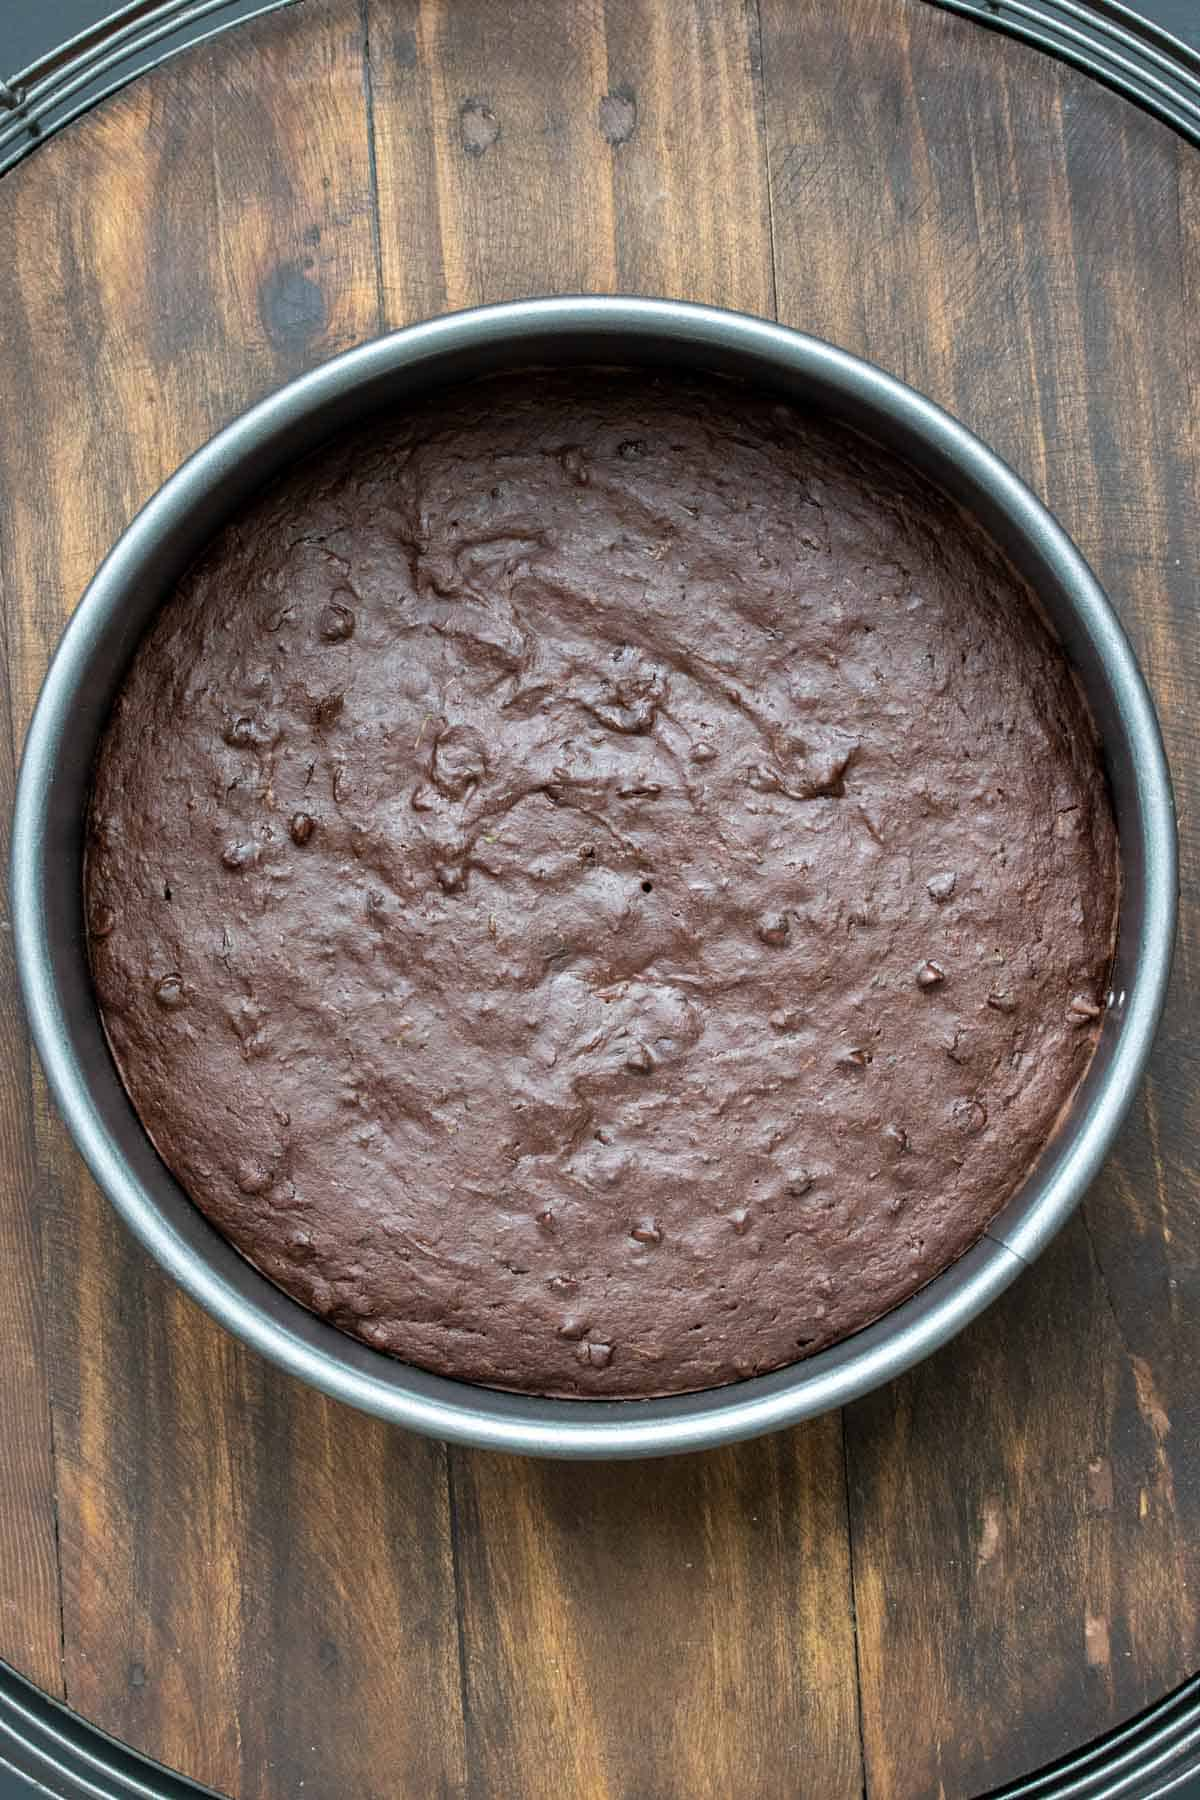 A round chocolate cake baked in a pan